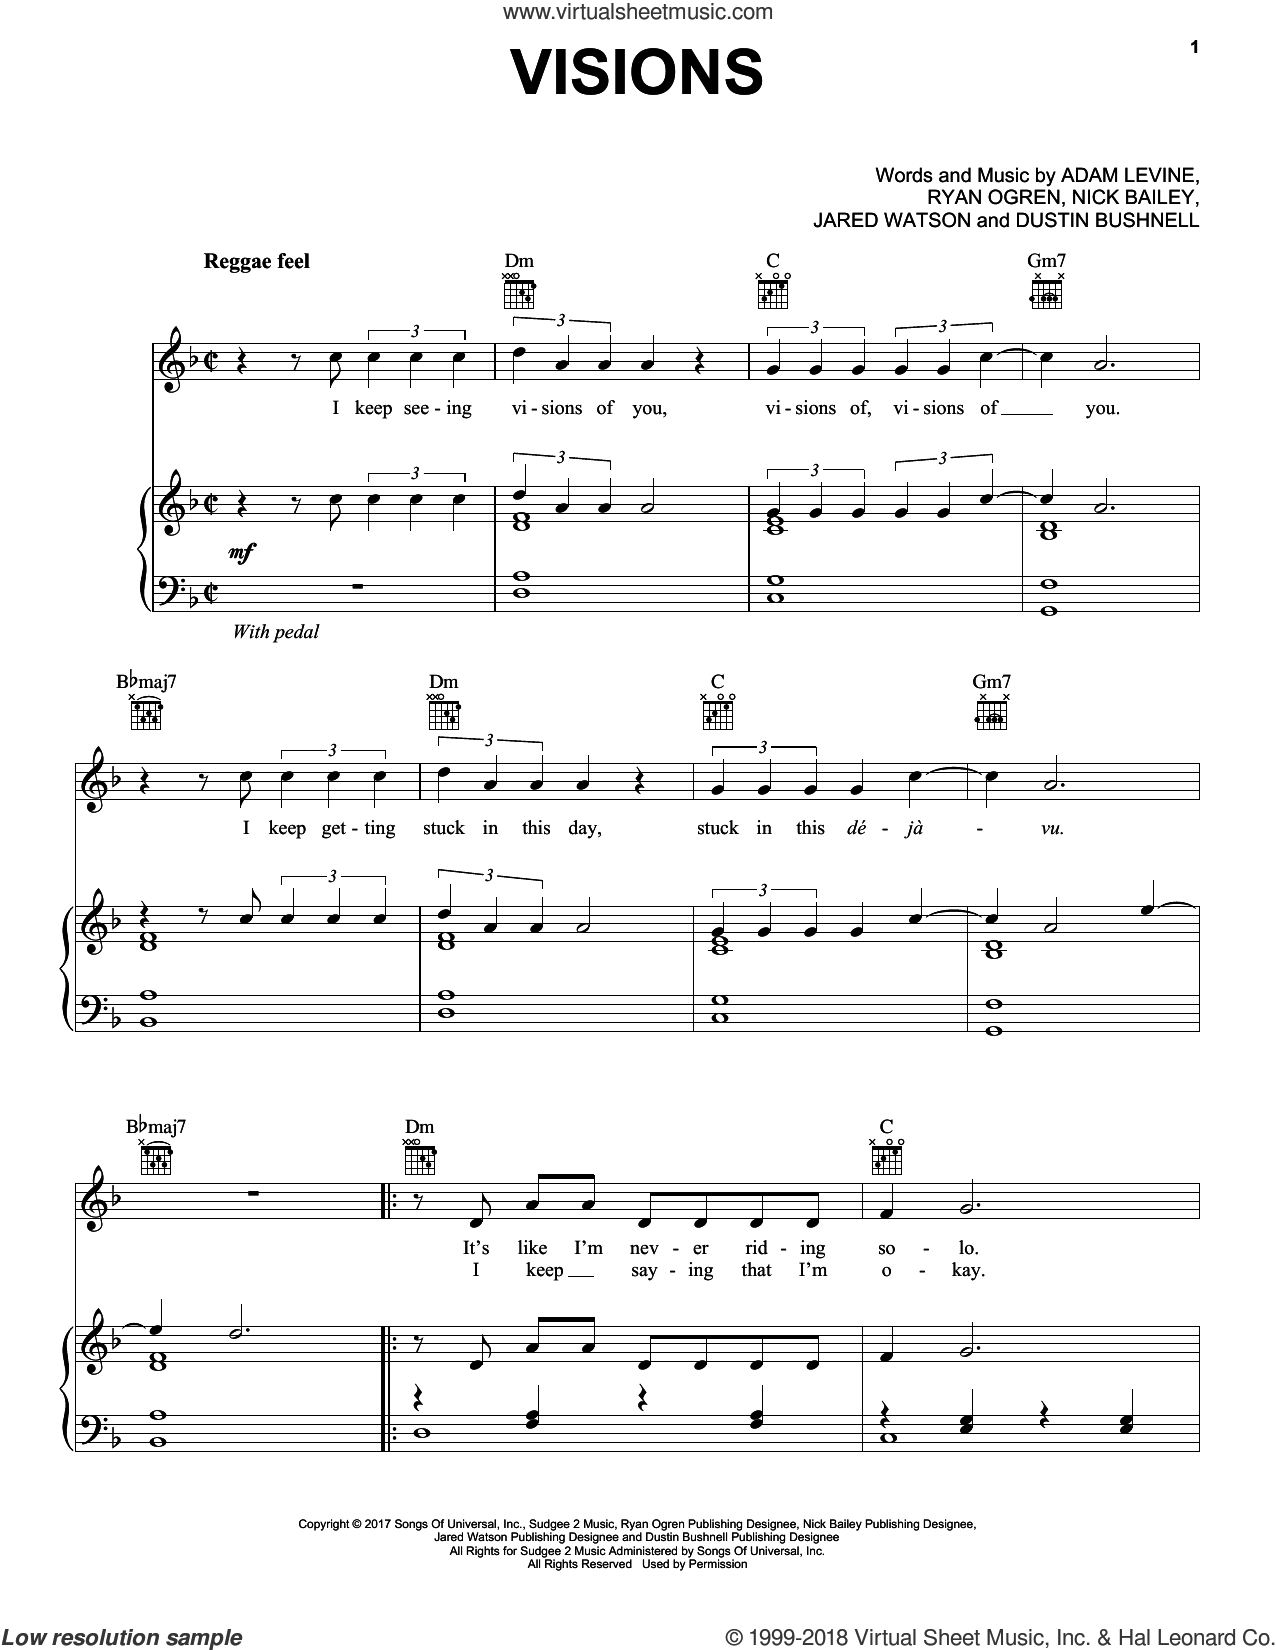 Visions sheet music for voice, piano or guitar by Maroon 5, Adam Levine, Dustin Bushnell, Jared Watson, Nick Bailey and Ryan Ogren, intermediate skill level